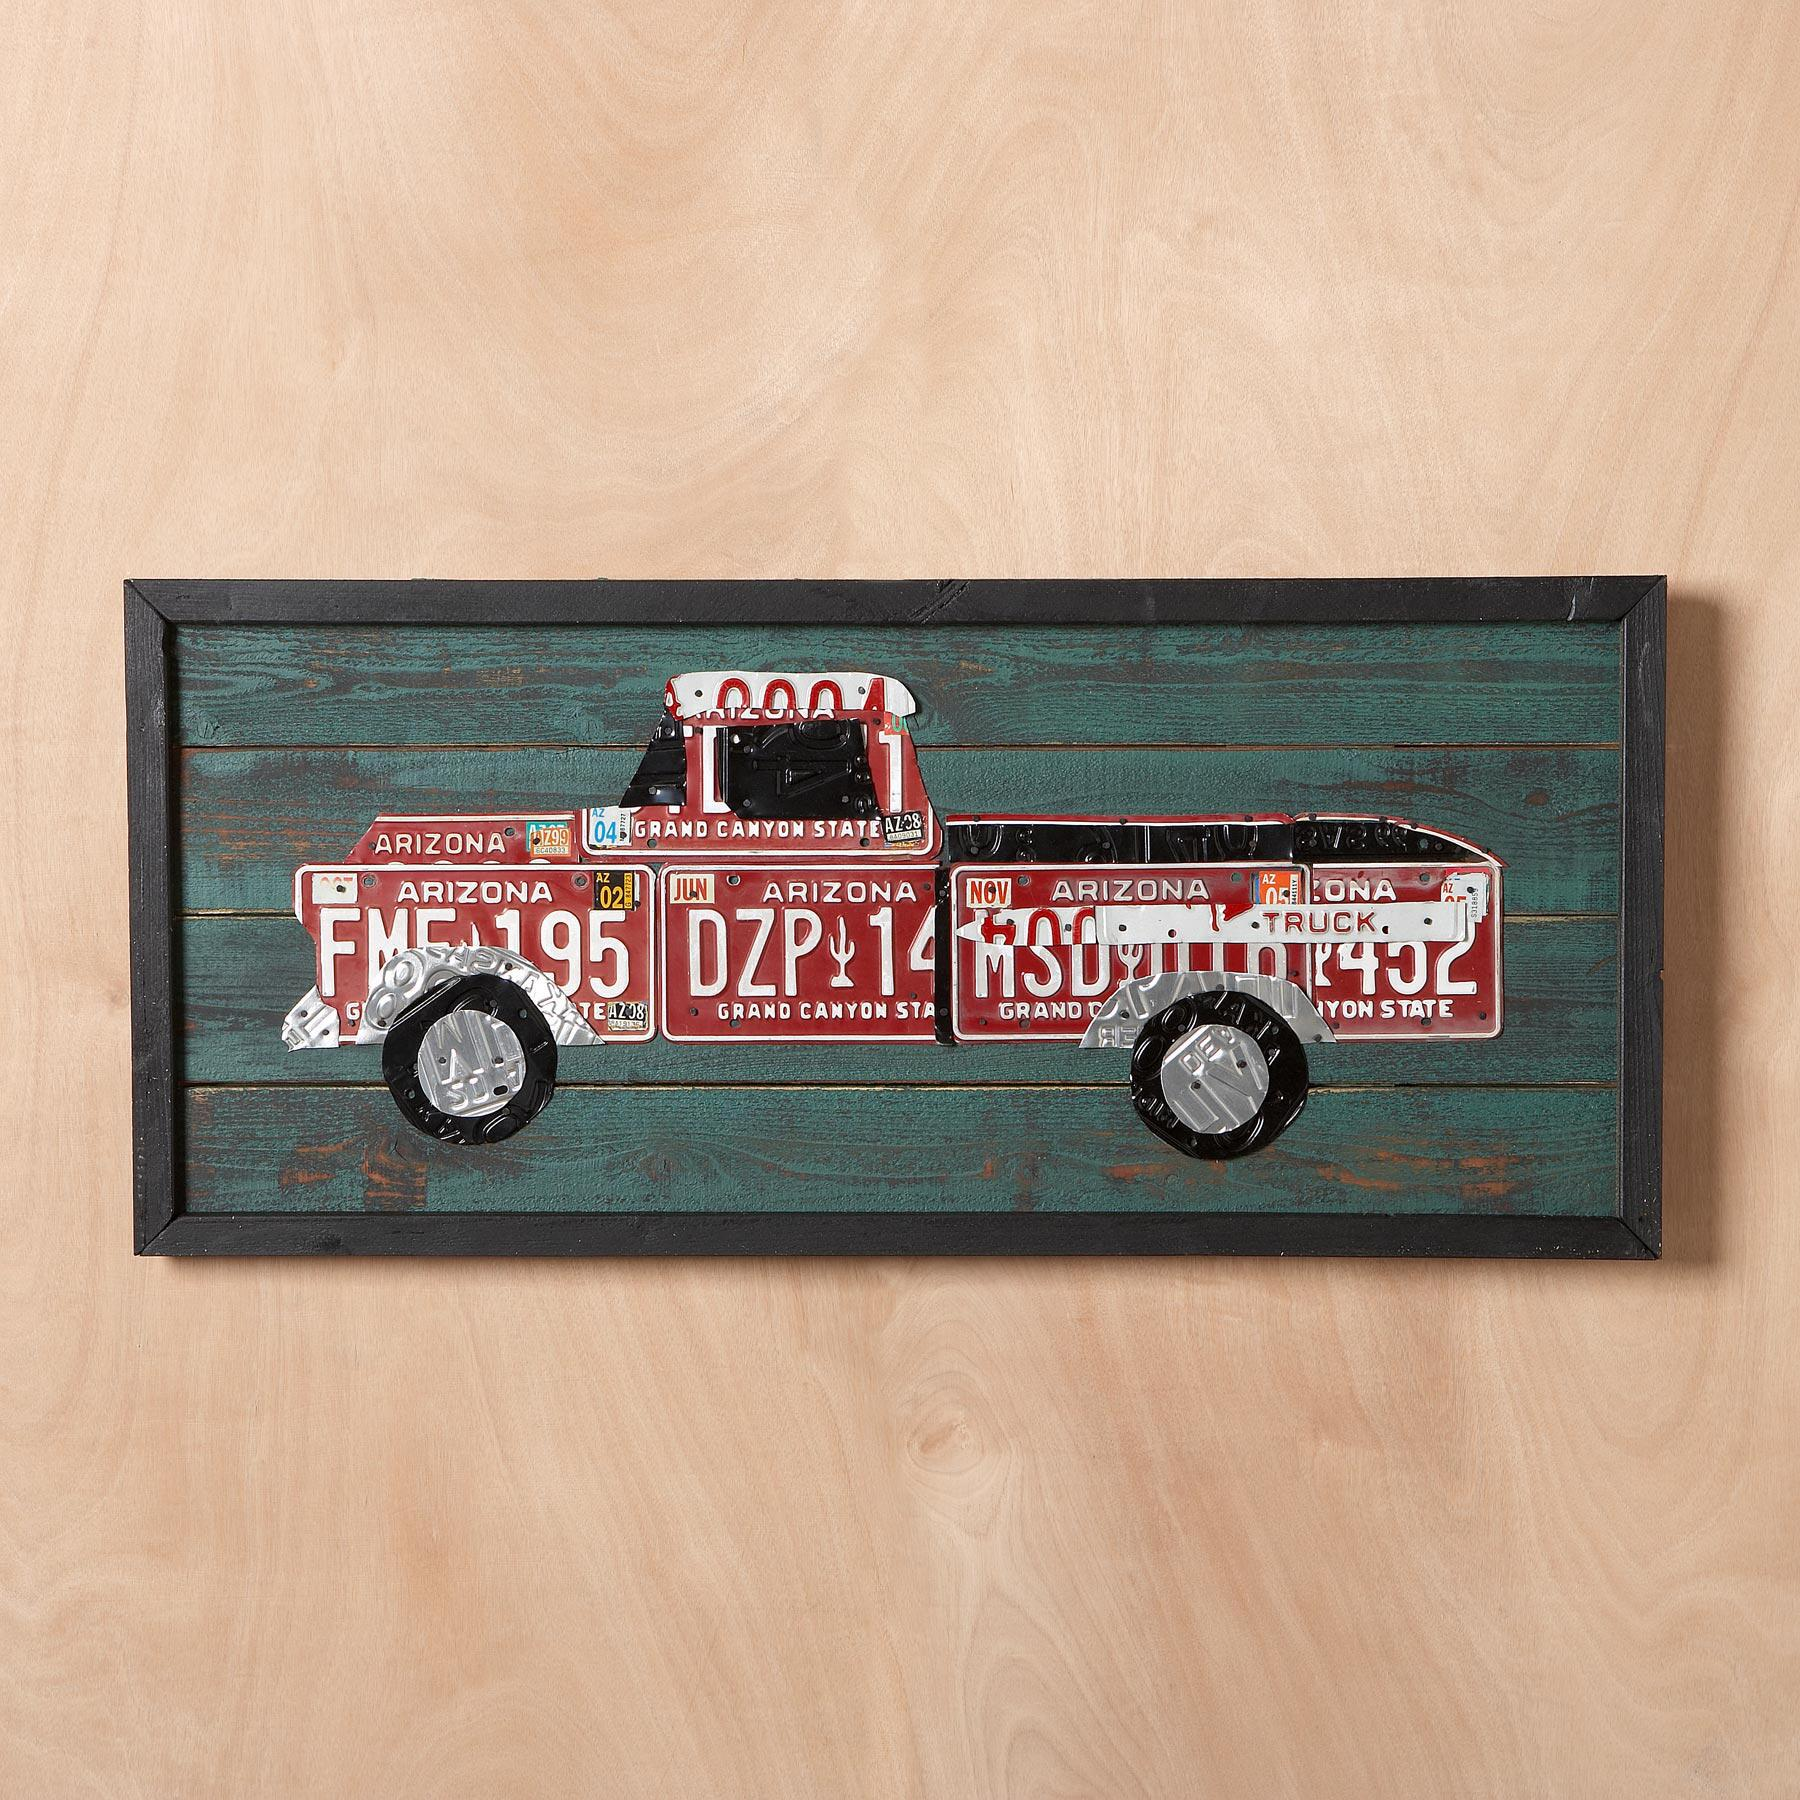 LICENSE PLATE TRUCK WALL ART: View 2